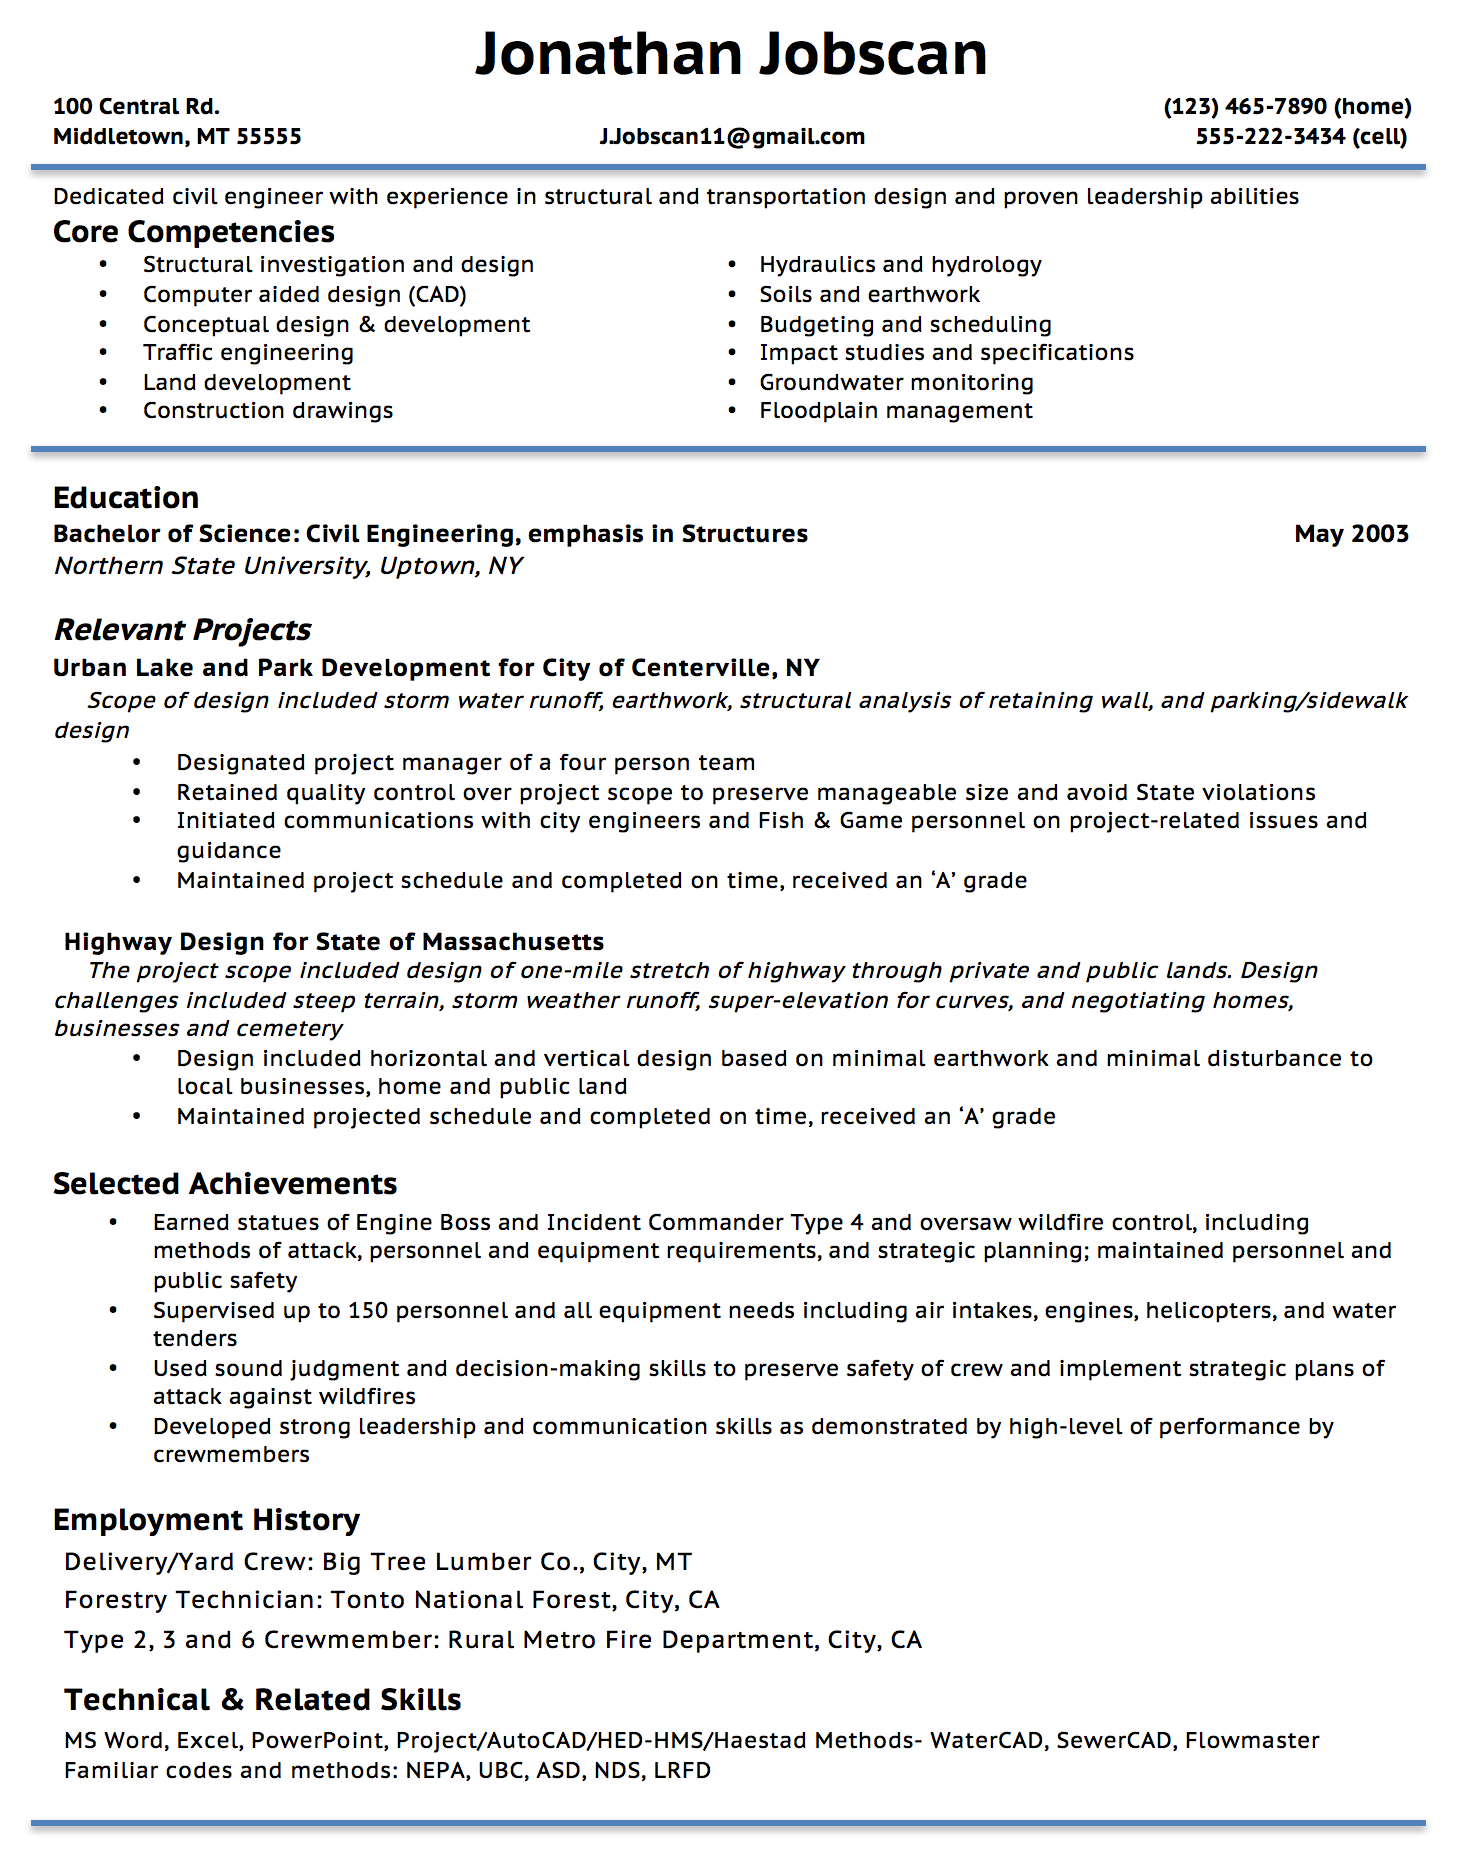 Opposenewapstandardsus  Surprising Resume Writing Guide  Jobscan With Remarkable Example Of A Functional Resume Format With Agreeable Ups Resume Also Operations Manager Resume Sample In Addition Acting Resume No Experience And Ciso Resume As Well As Engineering Intern Resume Additionally Caretaker Resume From Jobscanco With Opposenewapstandardsus  Remarkable Resume Writing Guide  Jobscan With Agreeable Example Of A Functional Resume Format And Surprising Ups Resume Also Operations Manager Resume Sample In Addition Acting Resume No Experience From Jobscanco